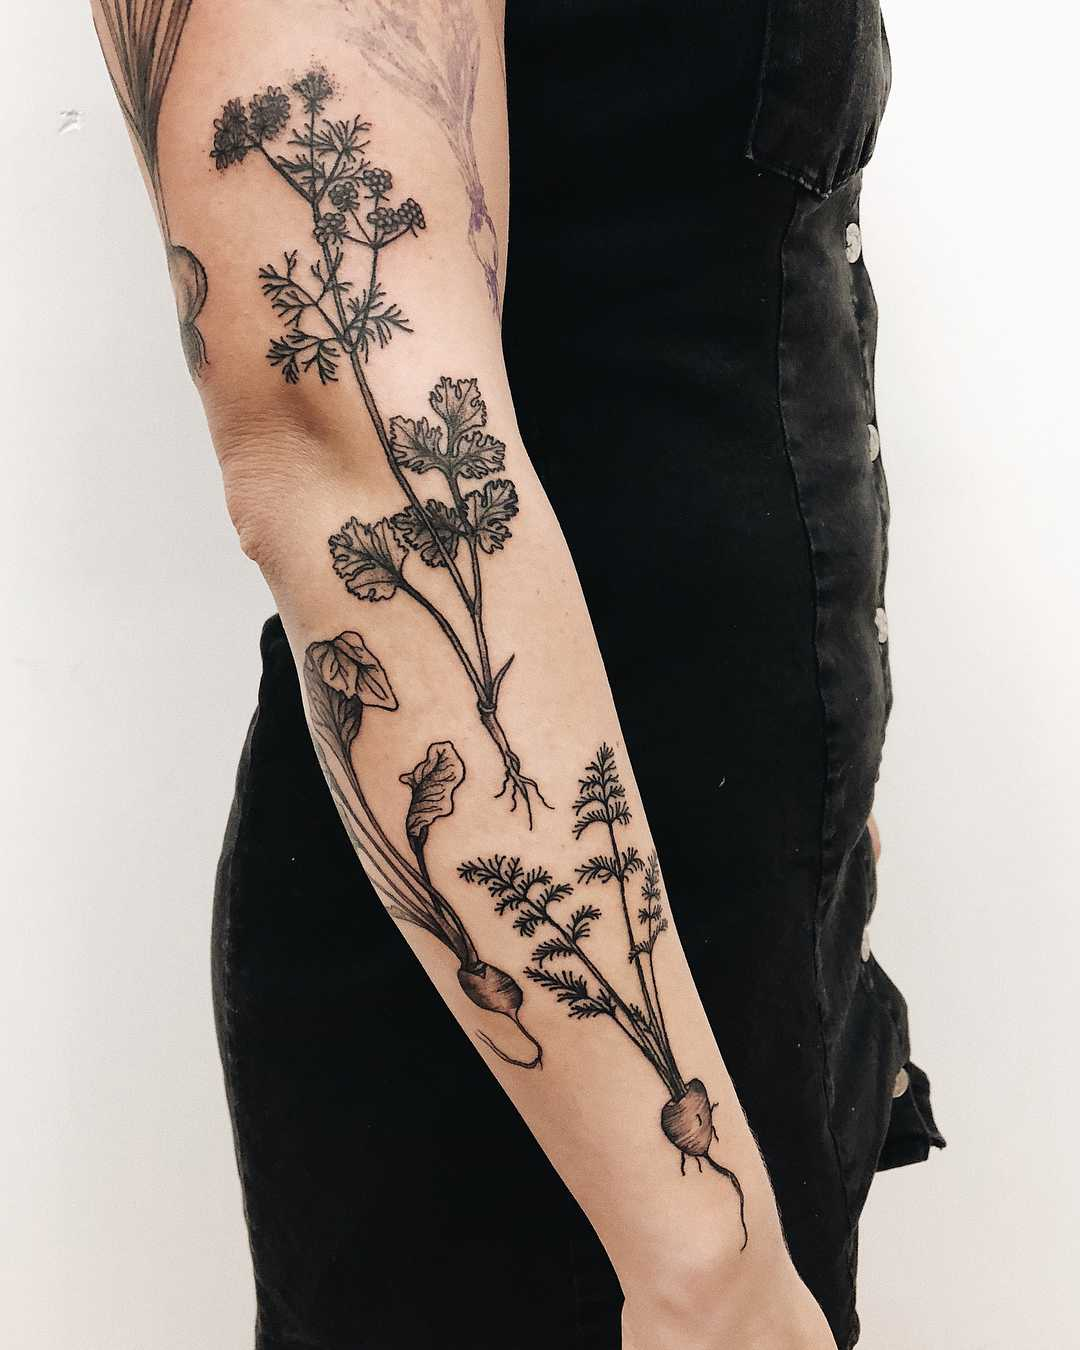 Various unearthed plant tattoos by Finley Jordan